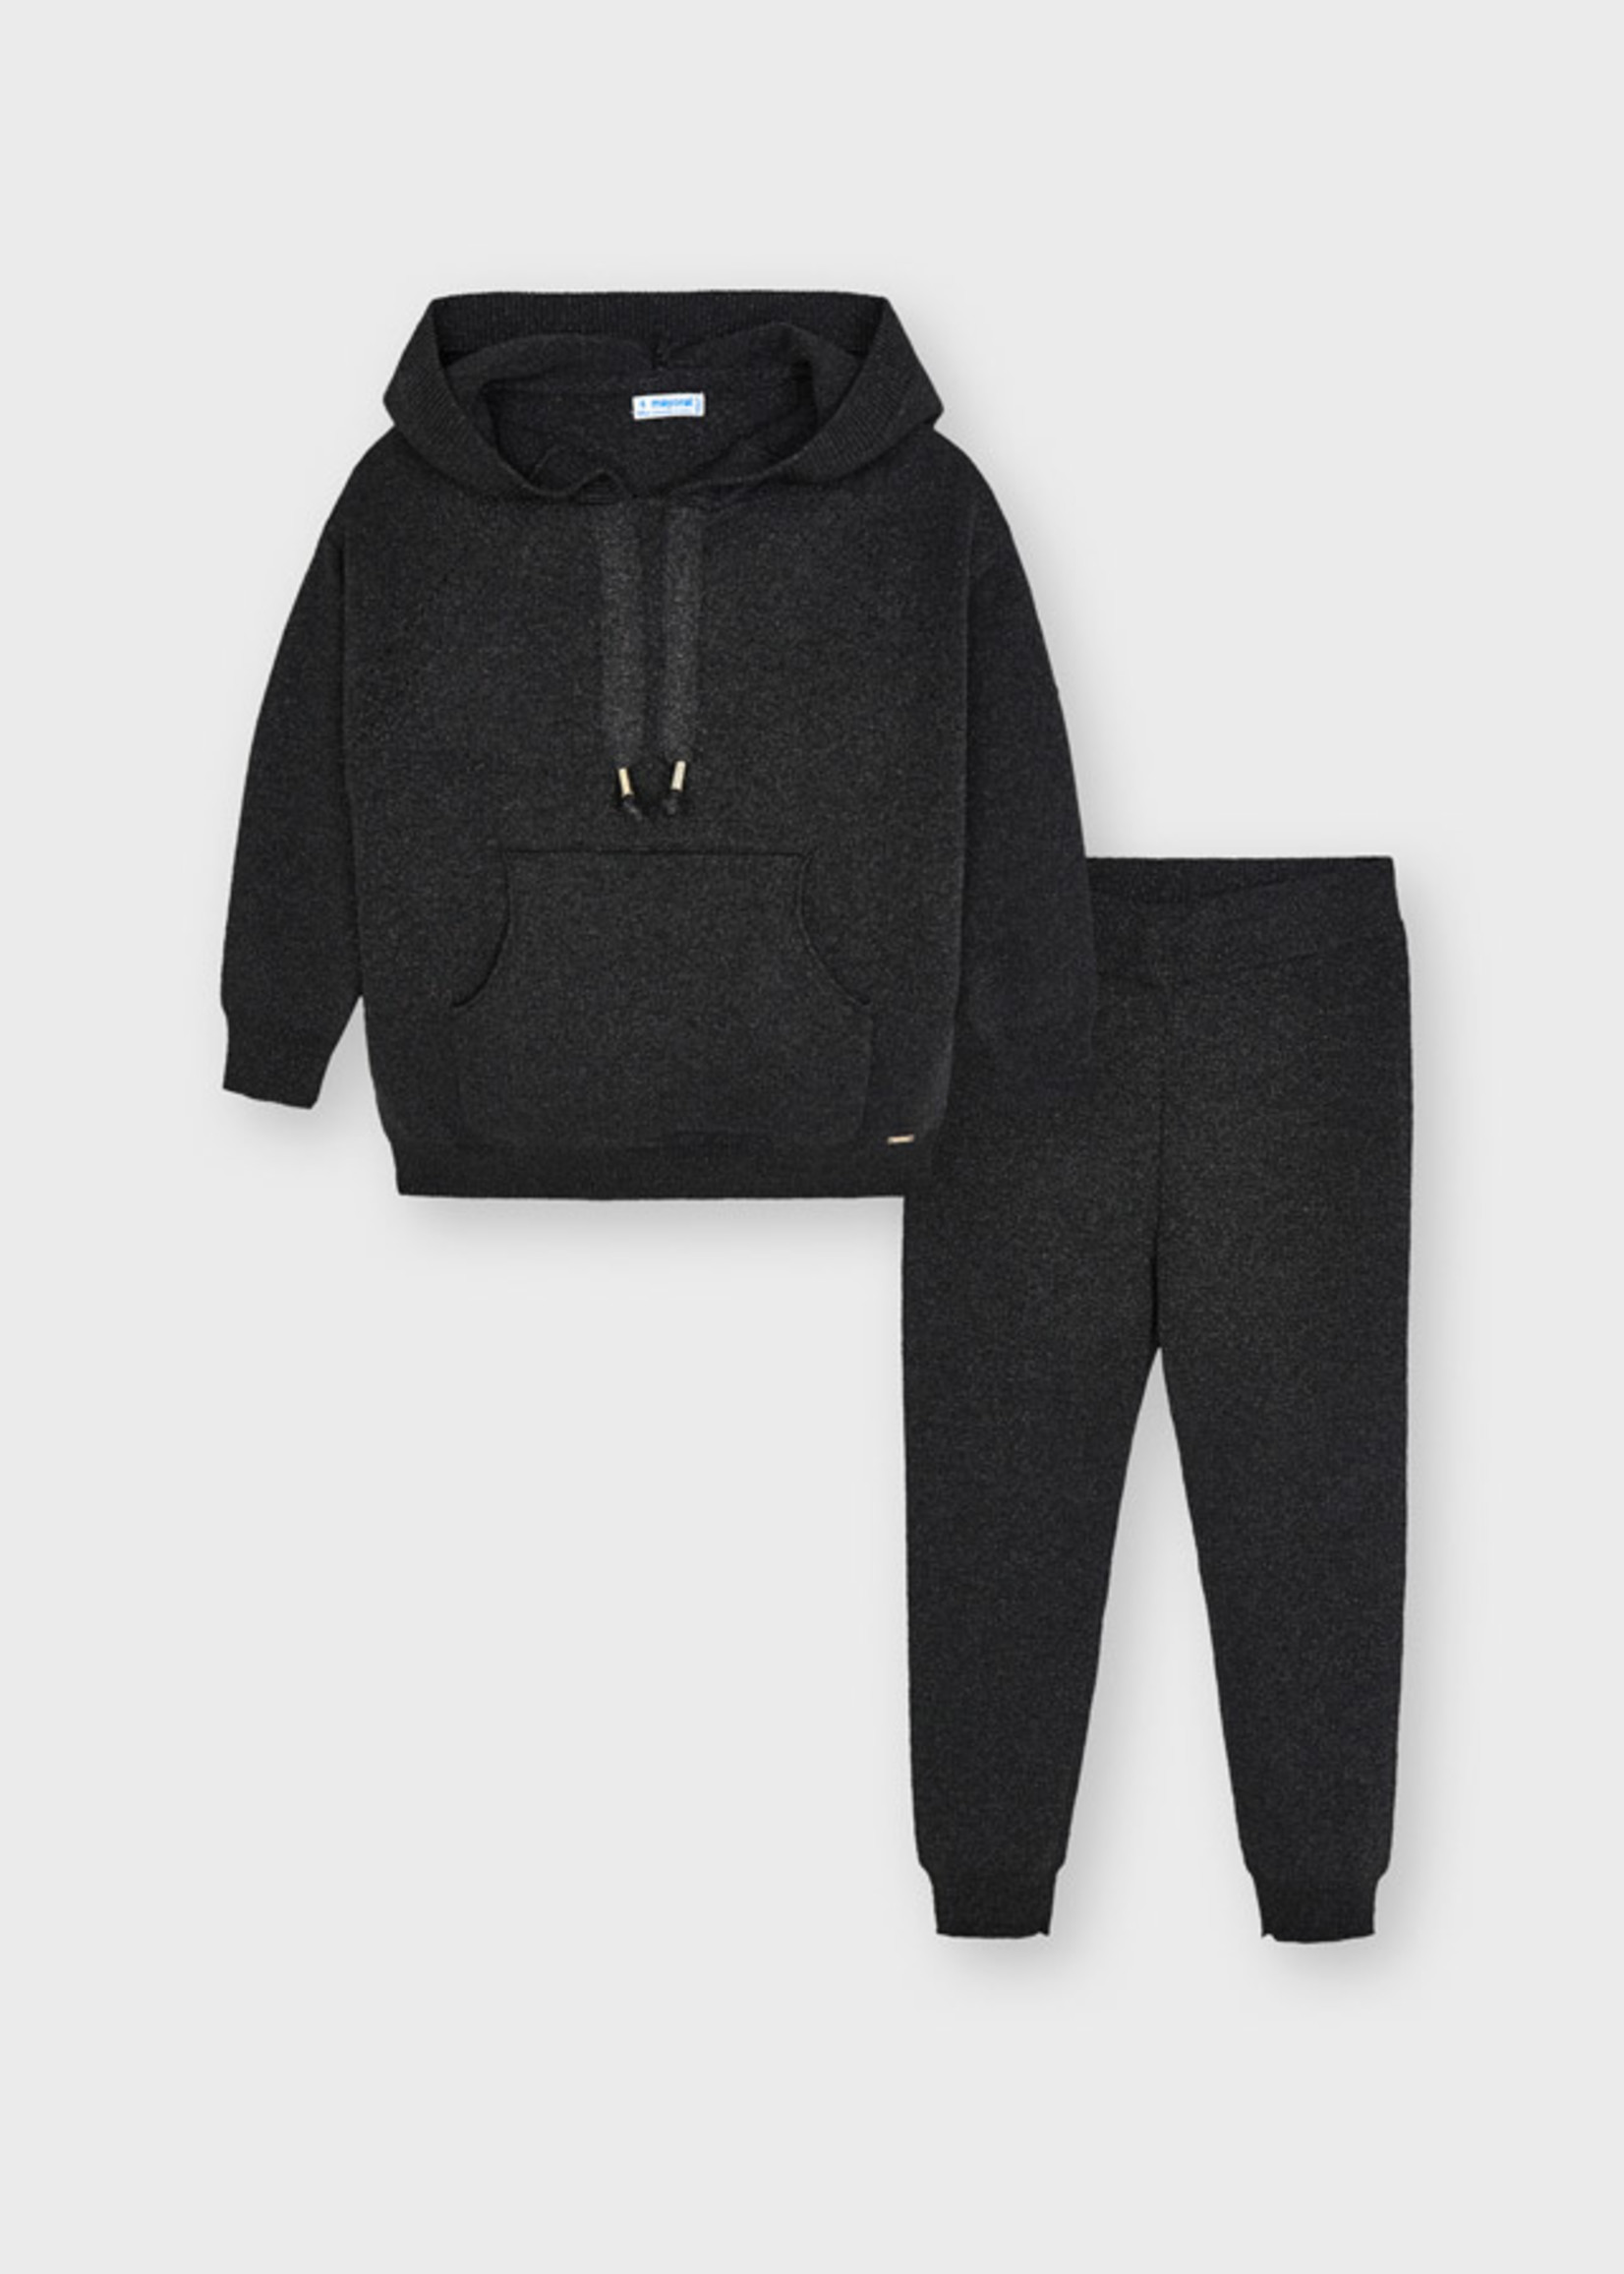 Mayoral Mayoral knit tracksuit for girl bright lea